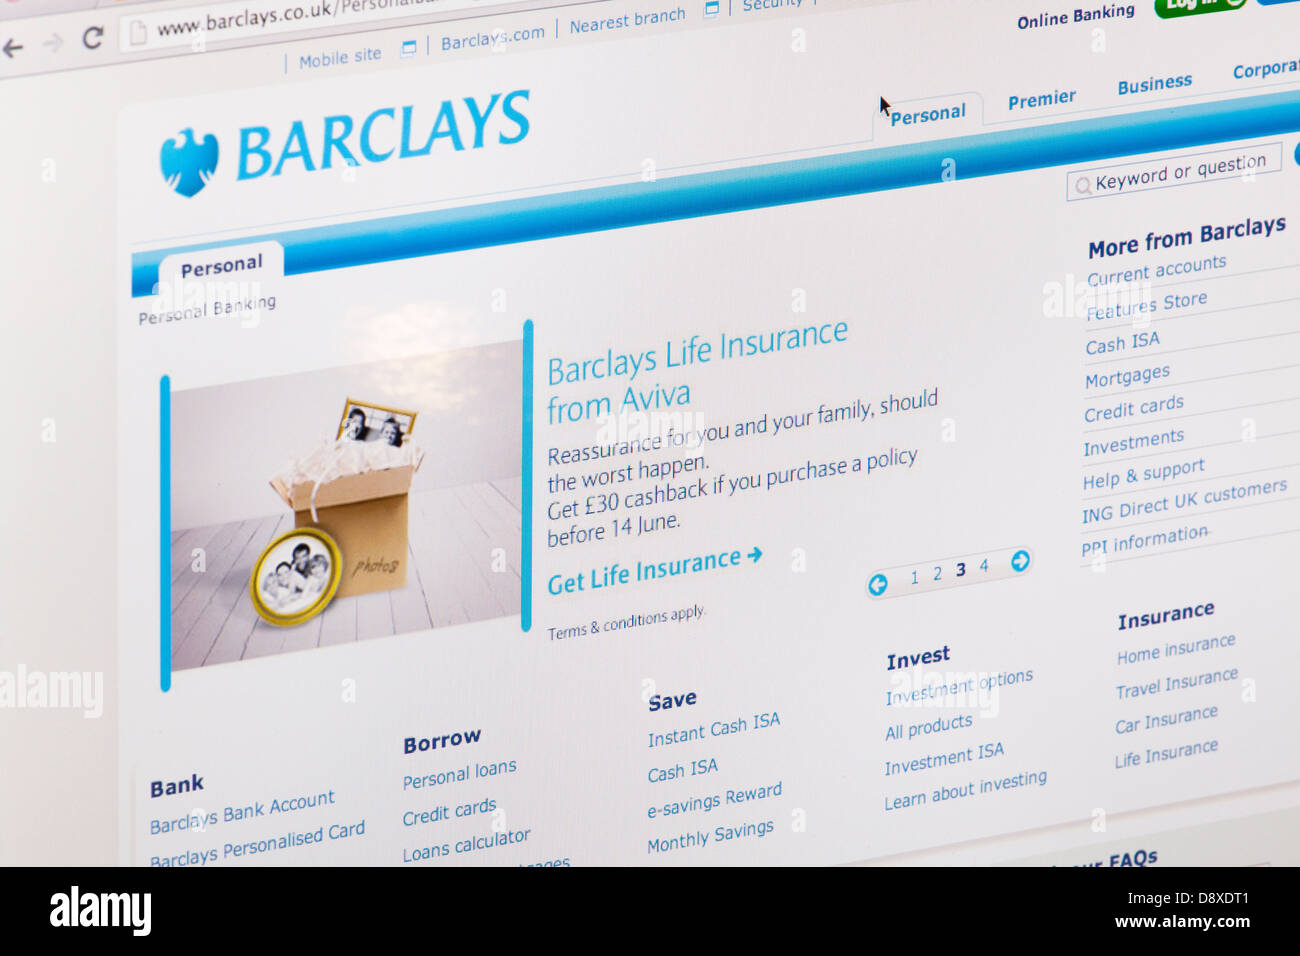 Barclays Online Banking Website or web page on a laptop